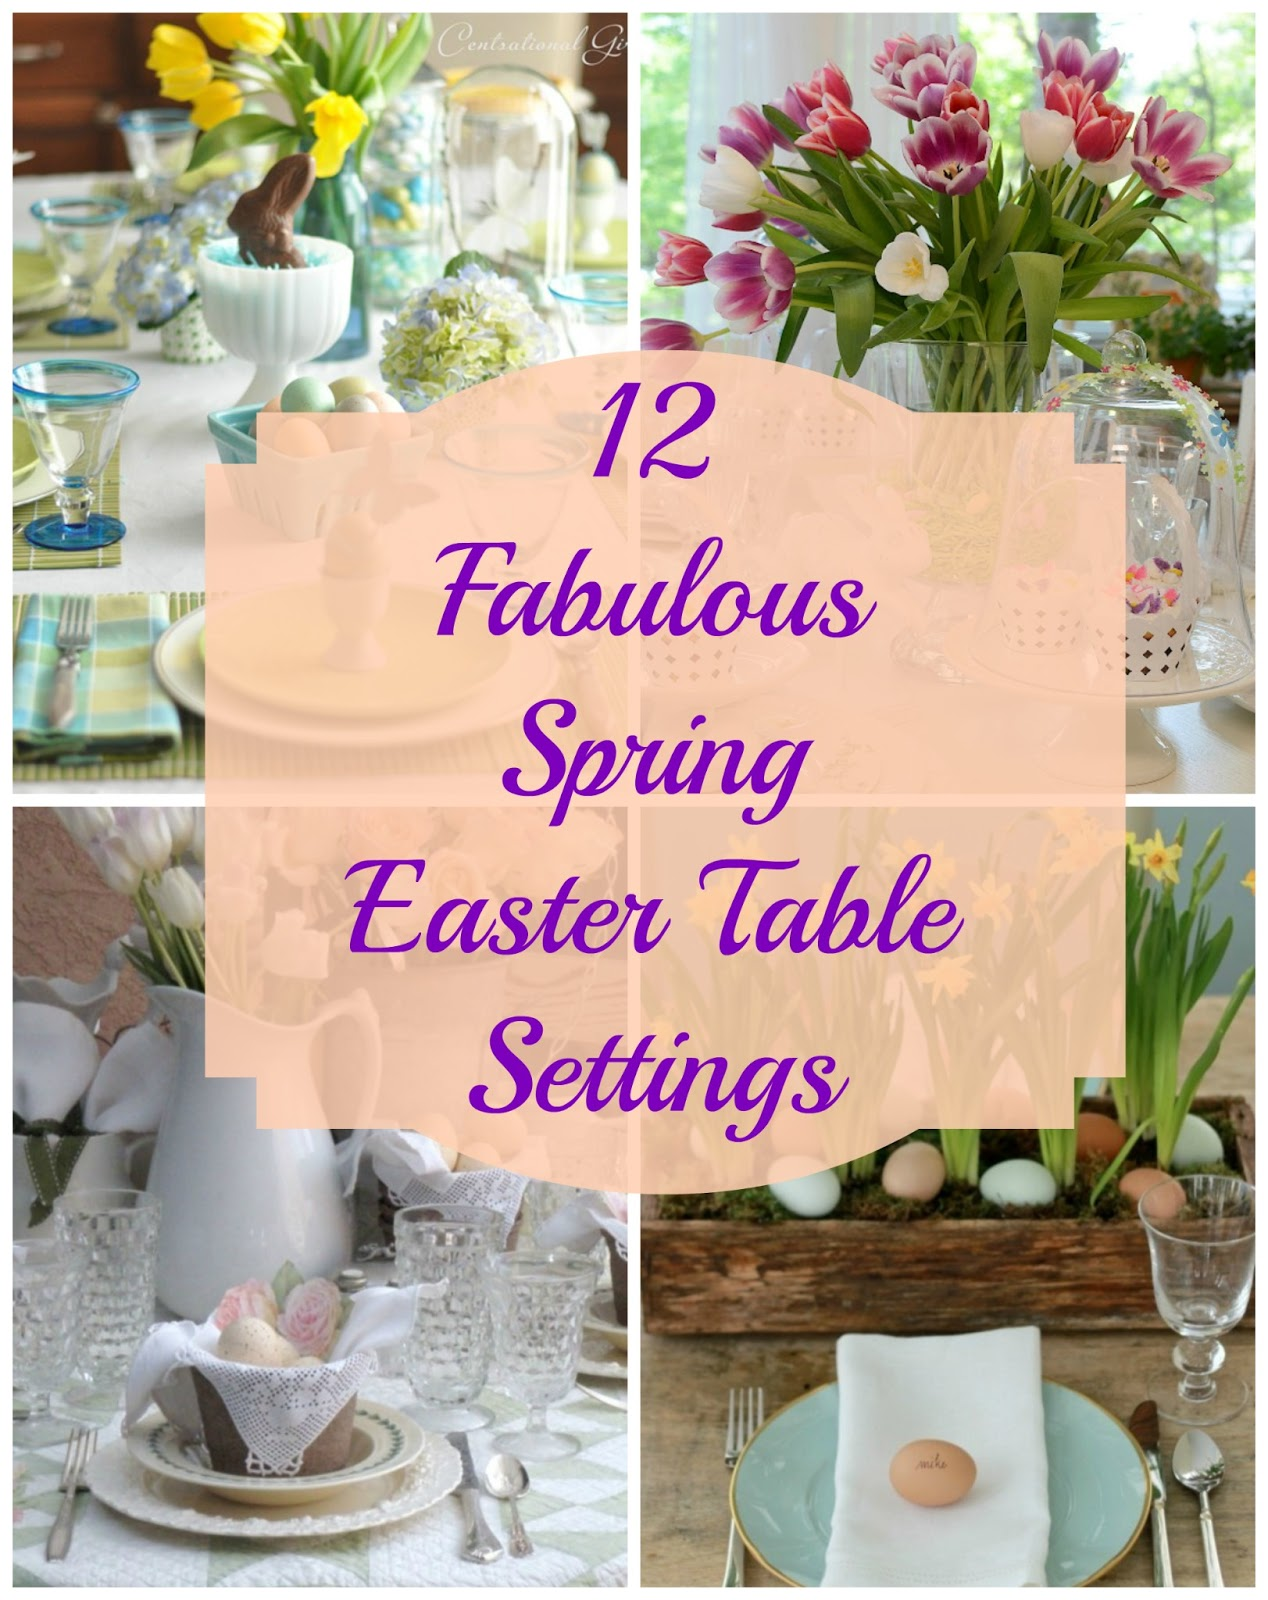 sc 1 st  MyThirtySpot & Sunday Brunch: 12 Spring Easter Table Settings - MyThirtySpot